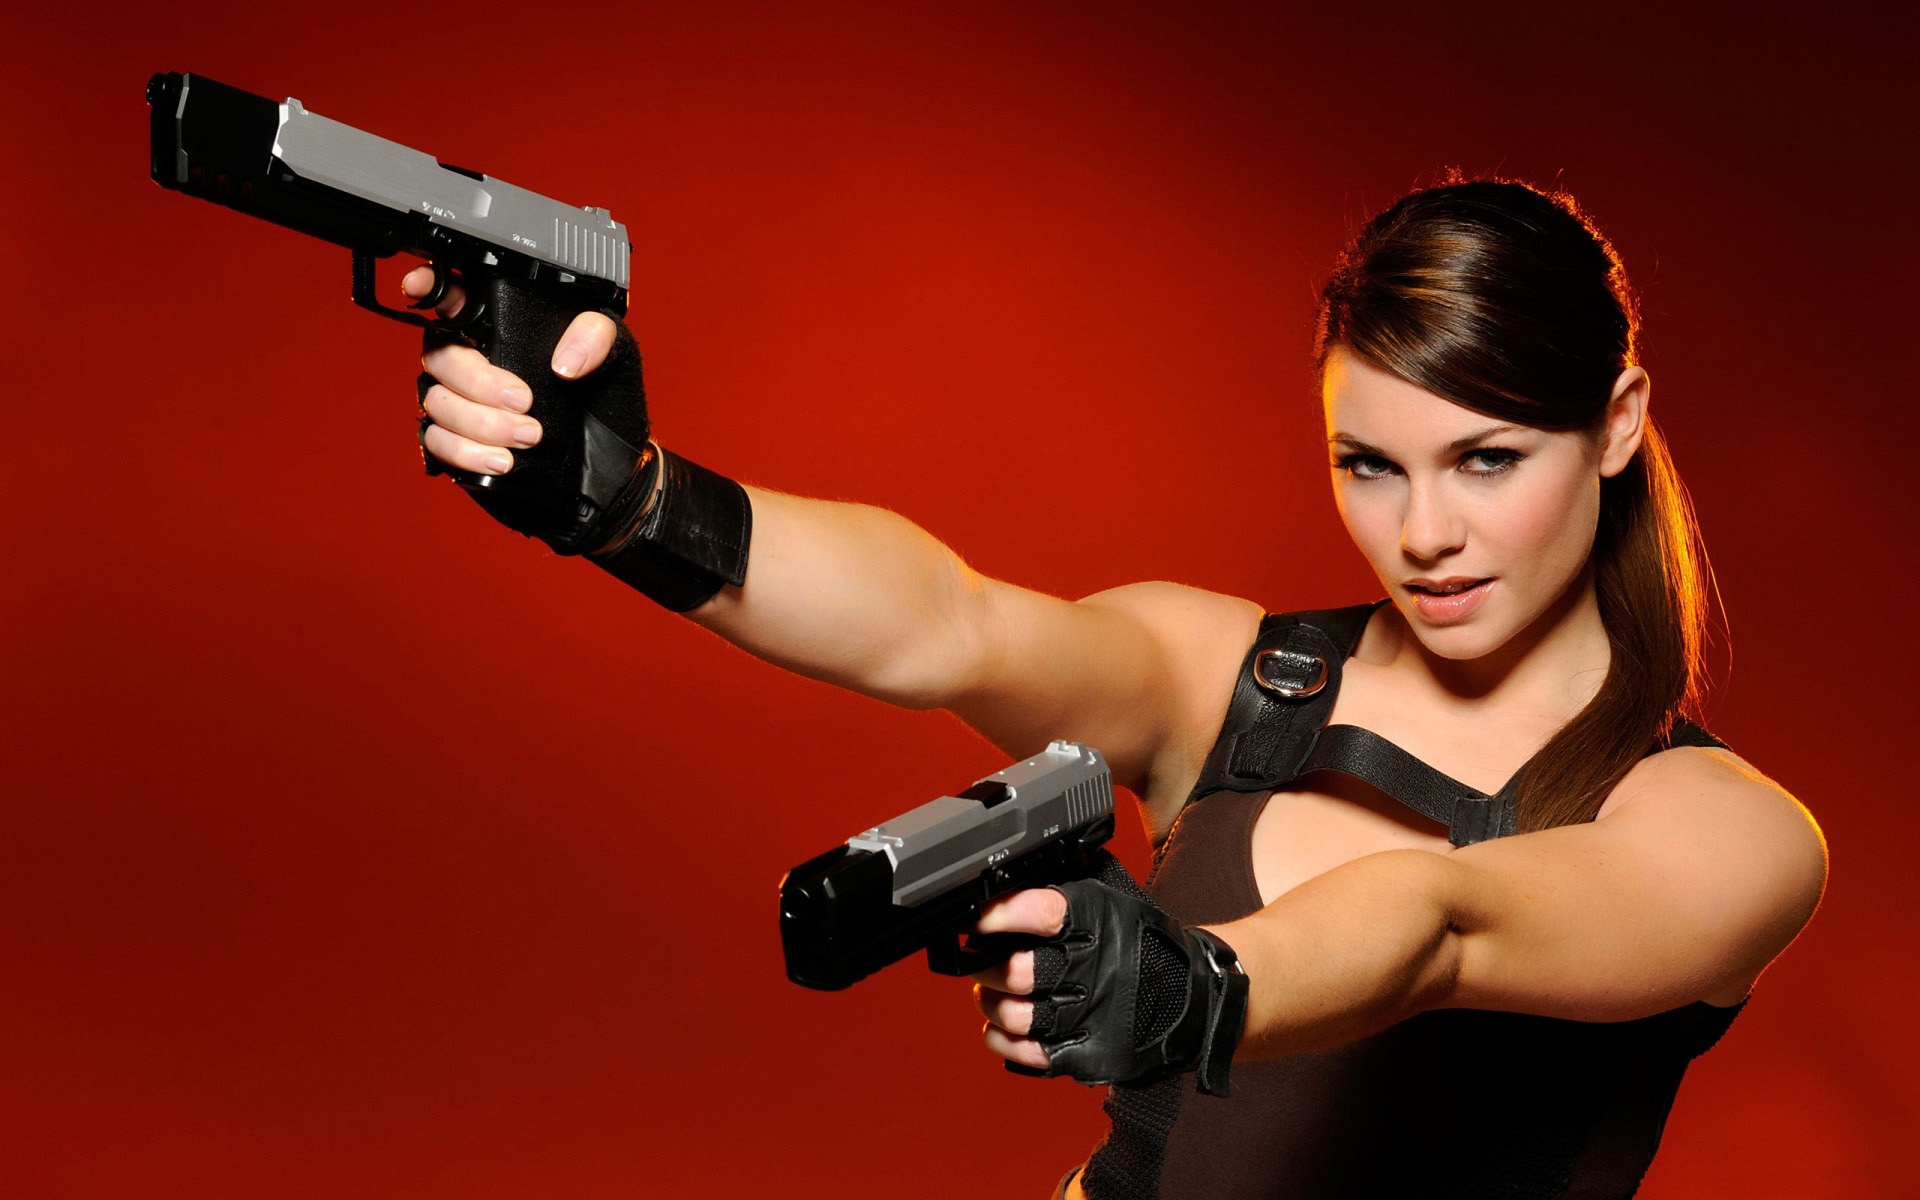 Carroll with guns wallpapers Alison Carroll with guns stock photos 1920x1200